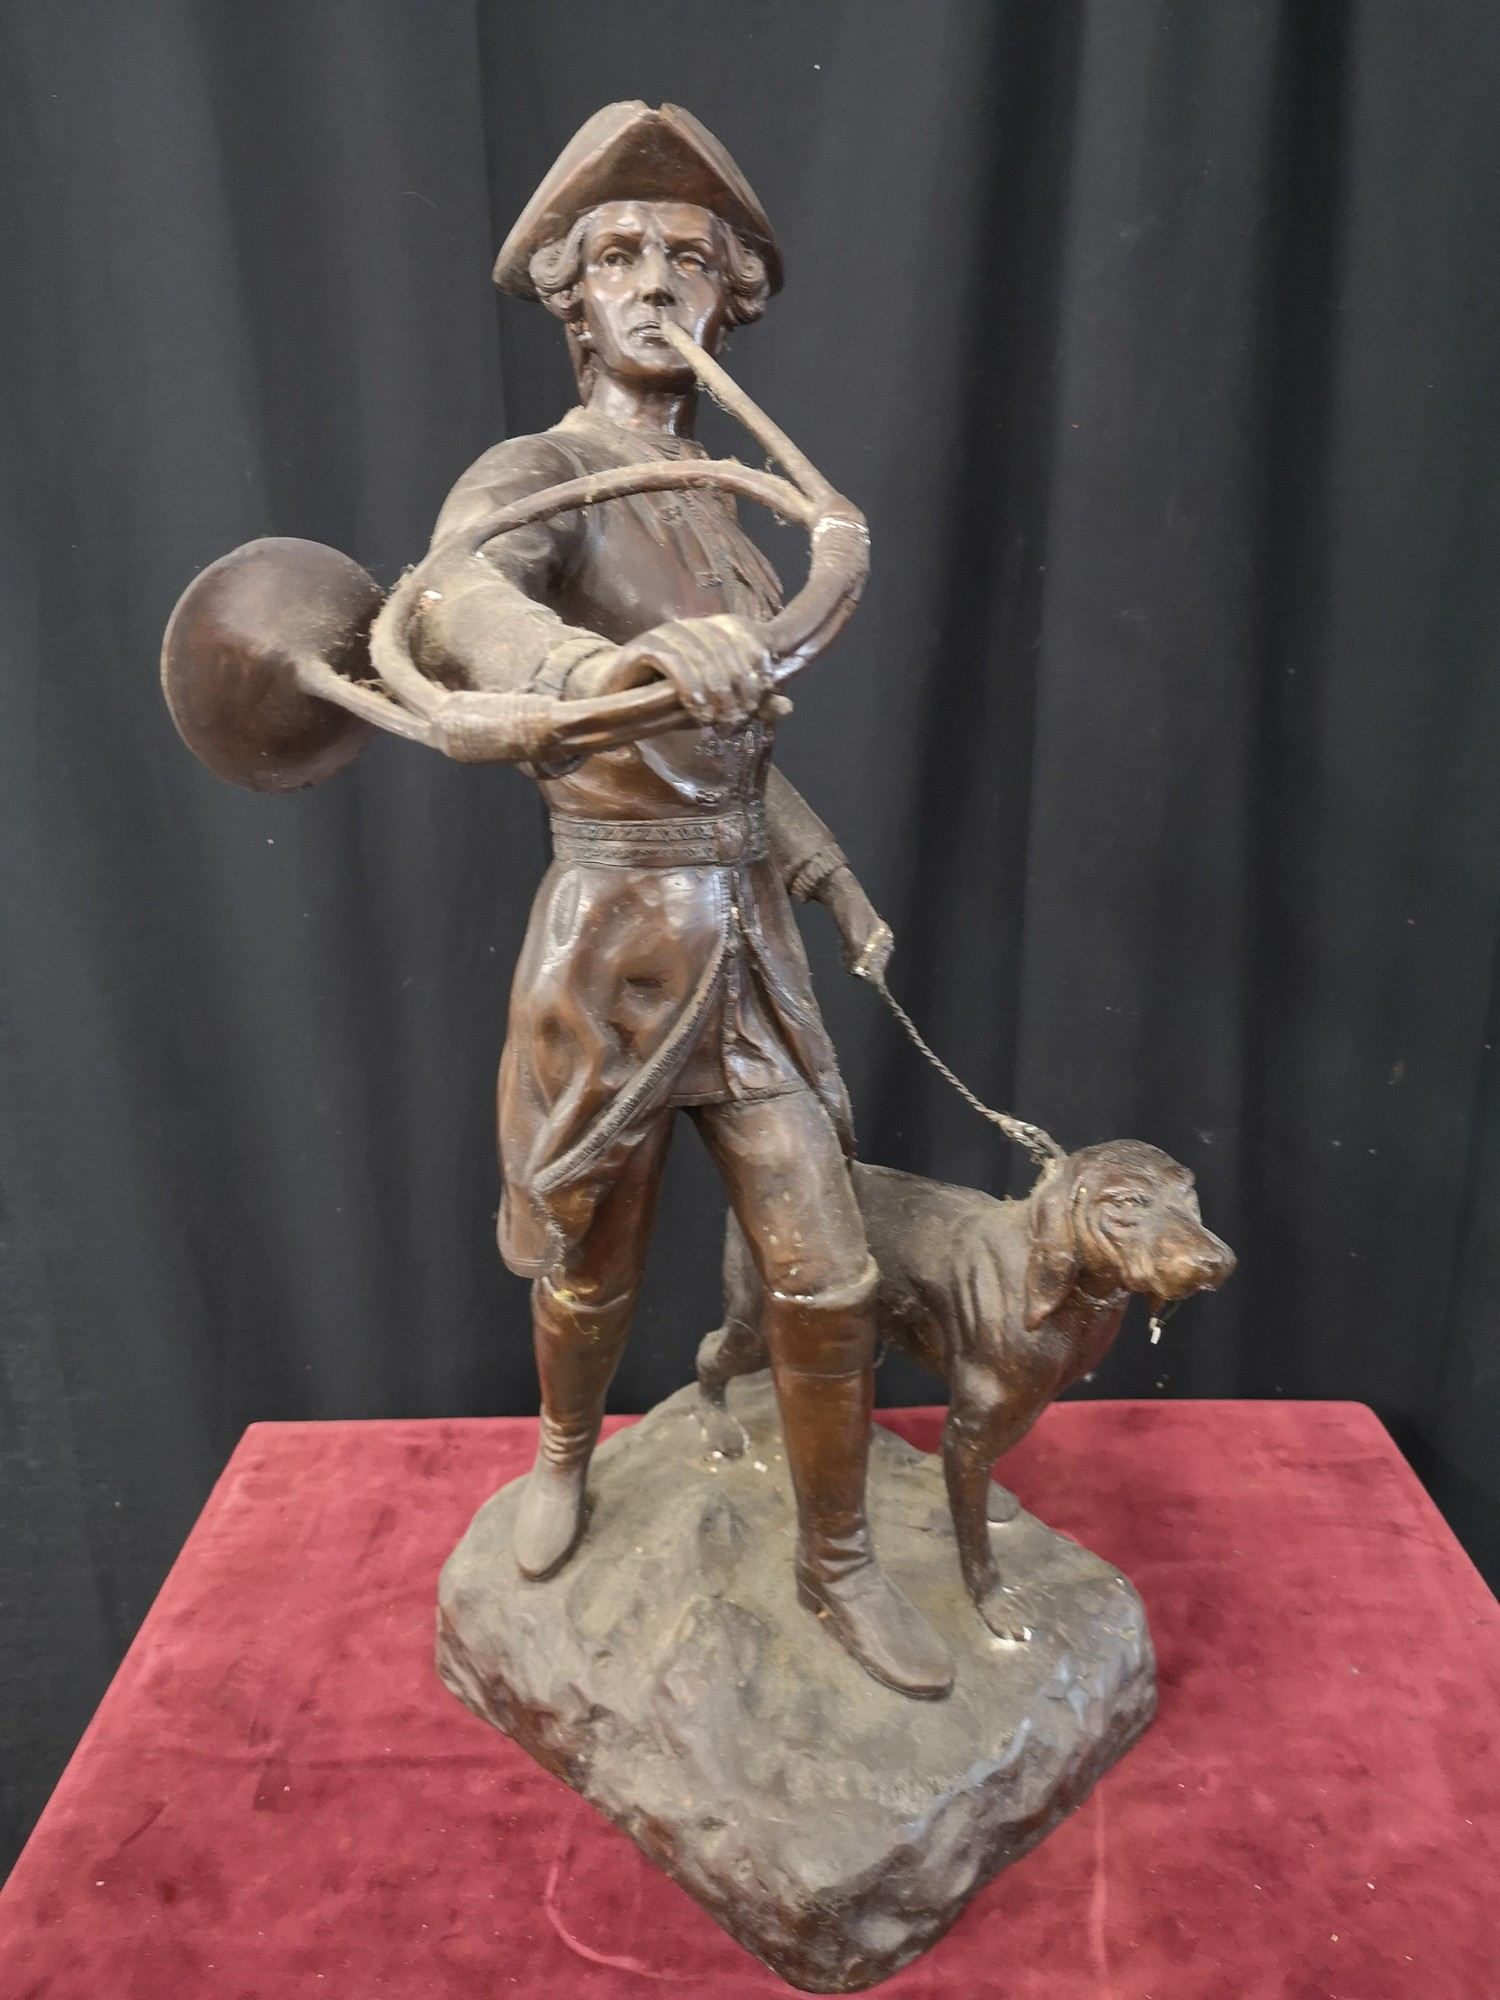 Large heavy 1900s Bronze study of soldier dog Figure 23.5 inches in height. Weighs 14kg.